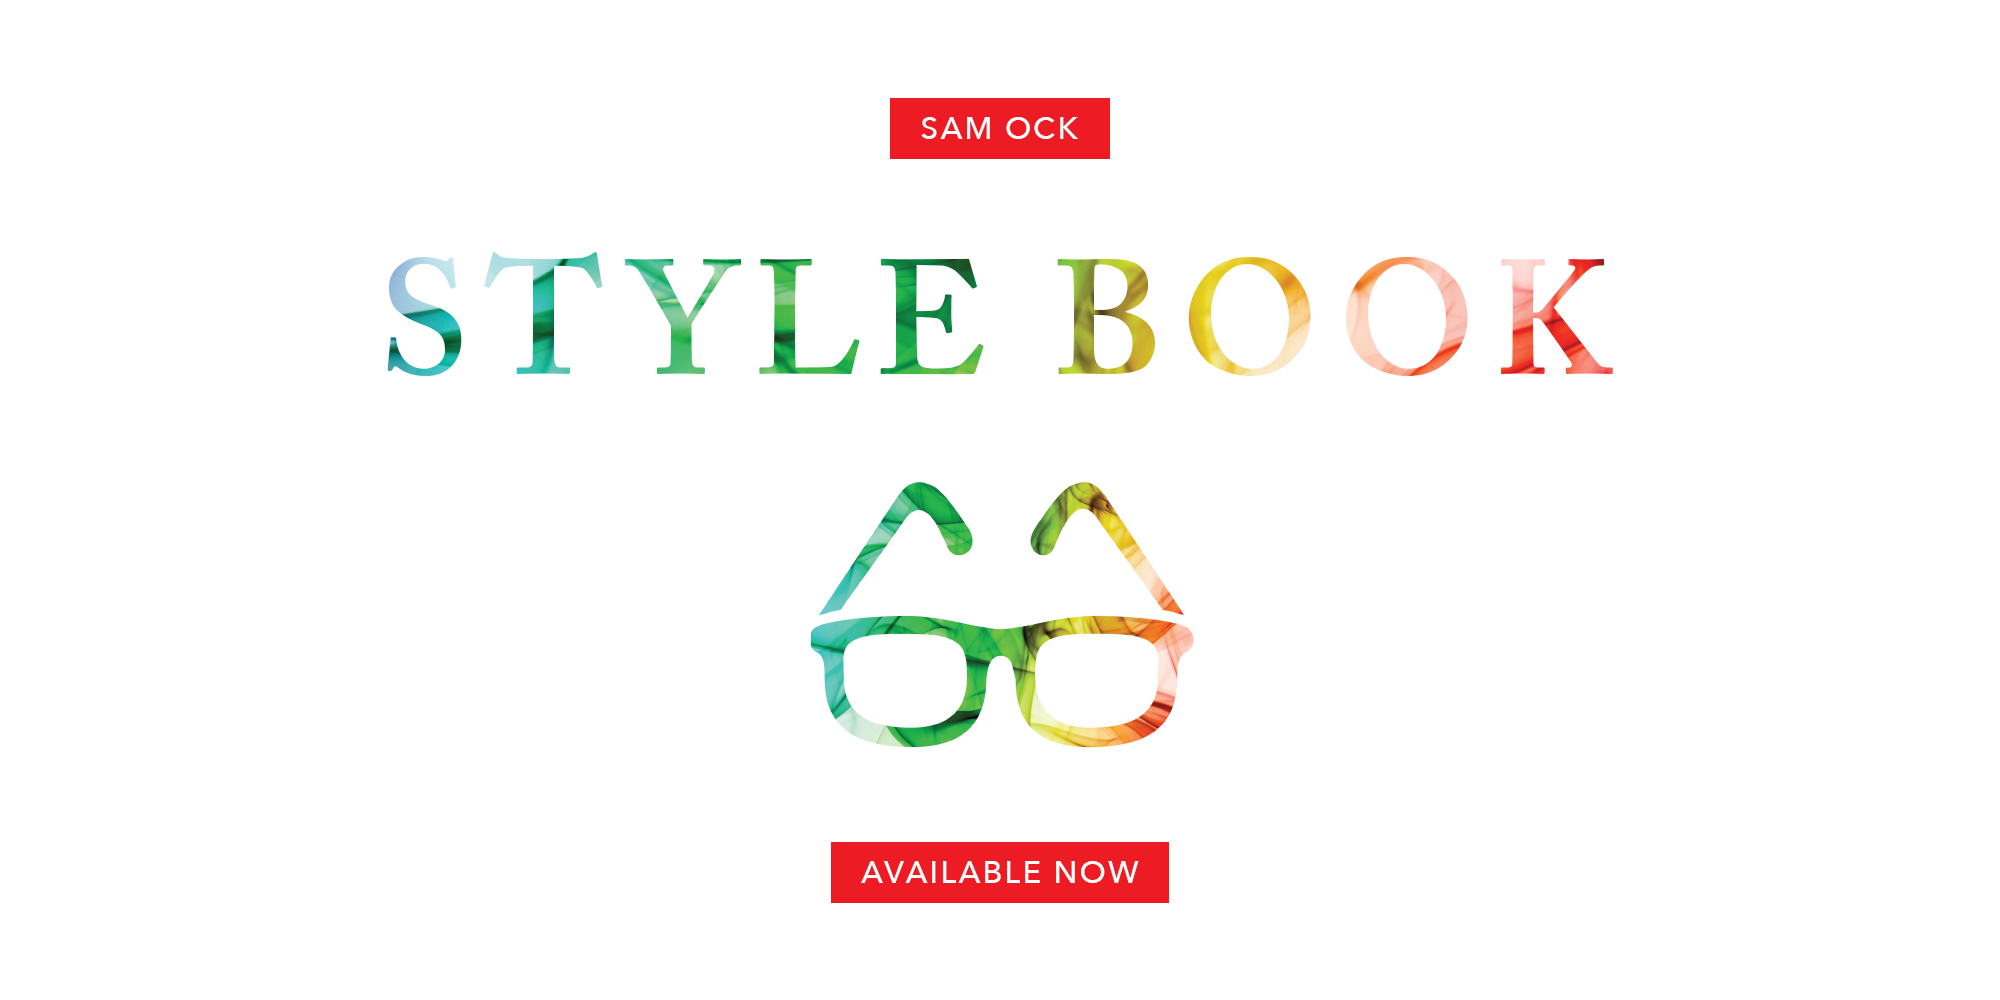 Sam Ock - Style Book Available Now